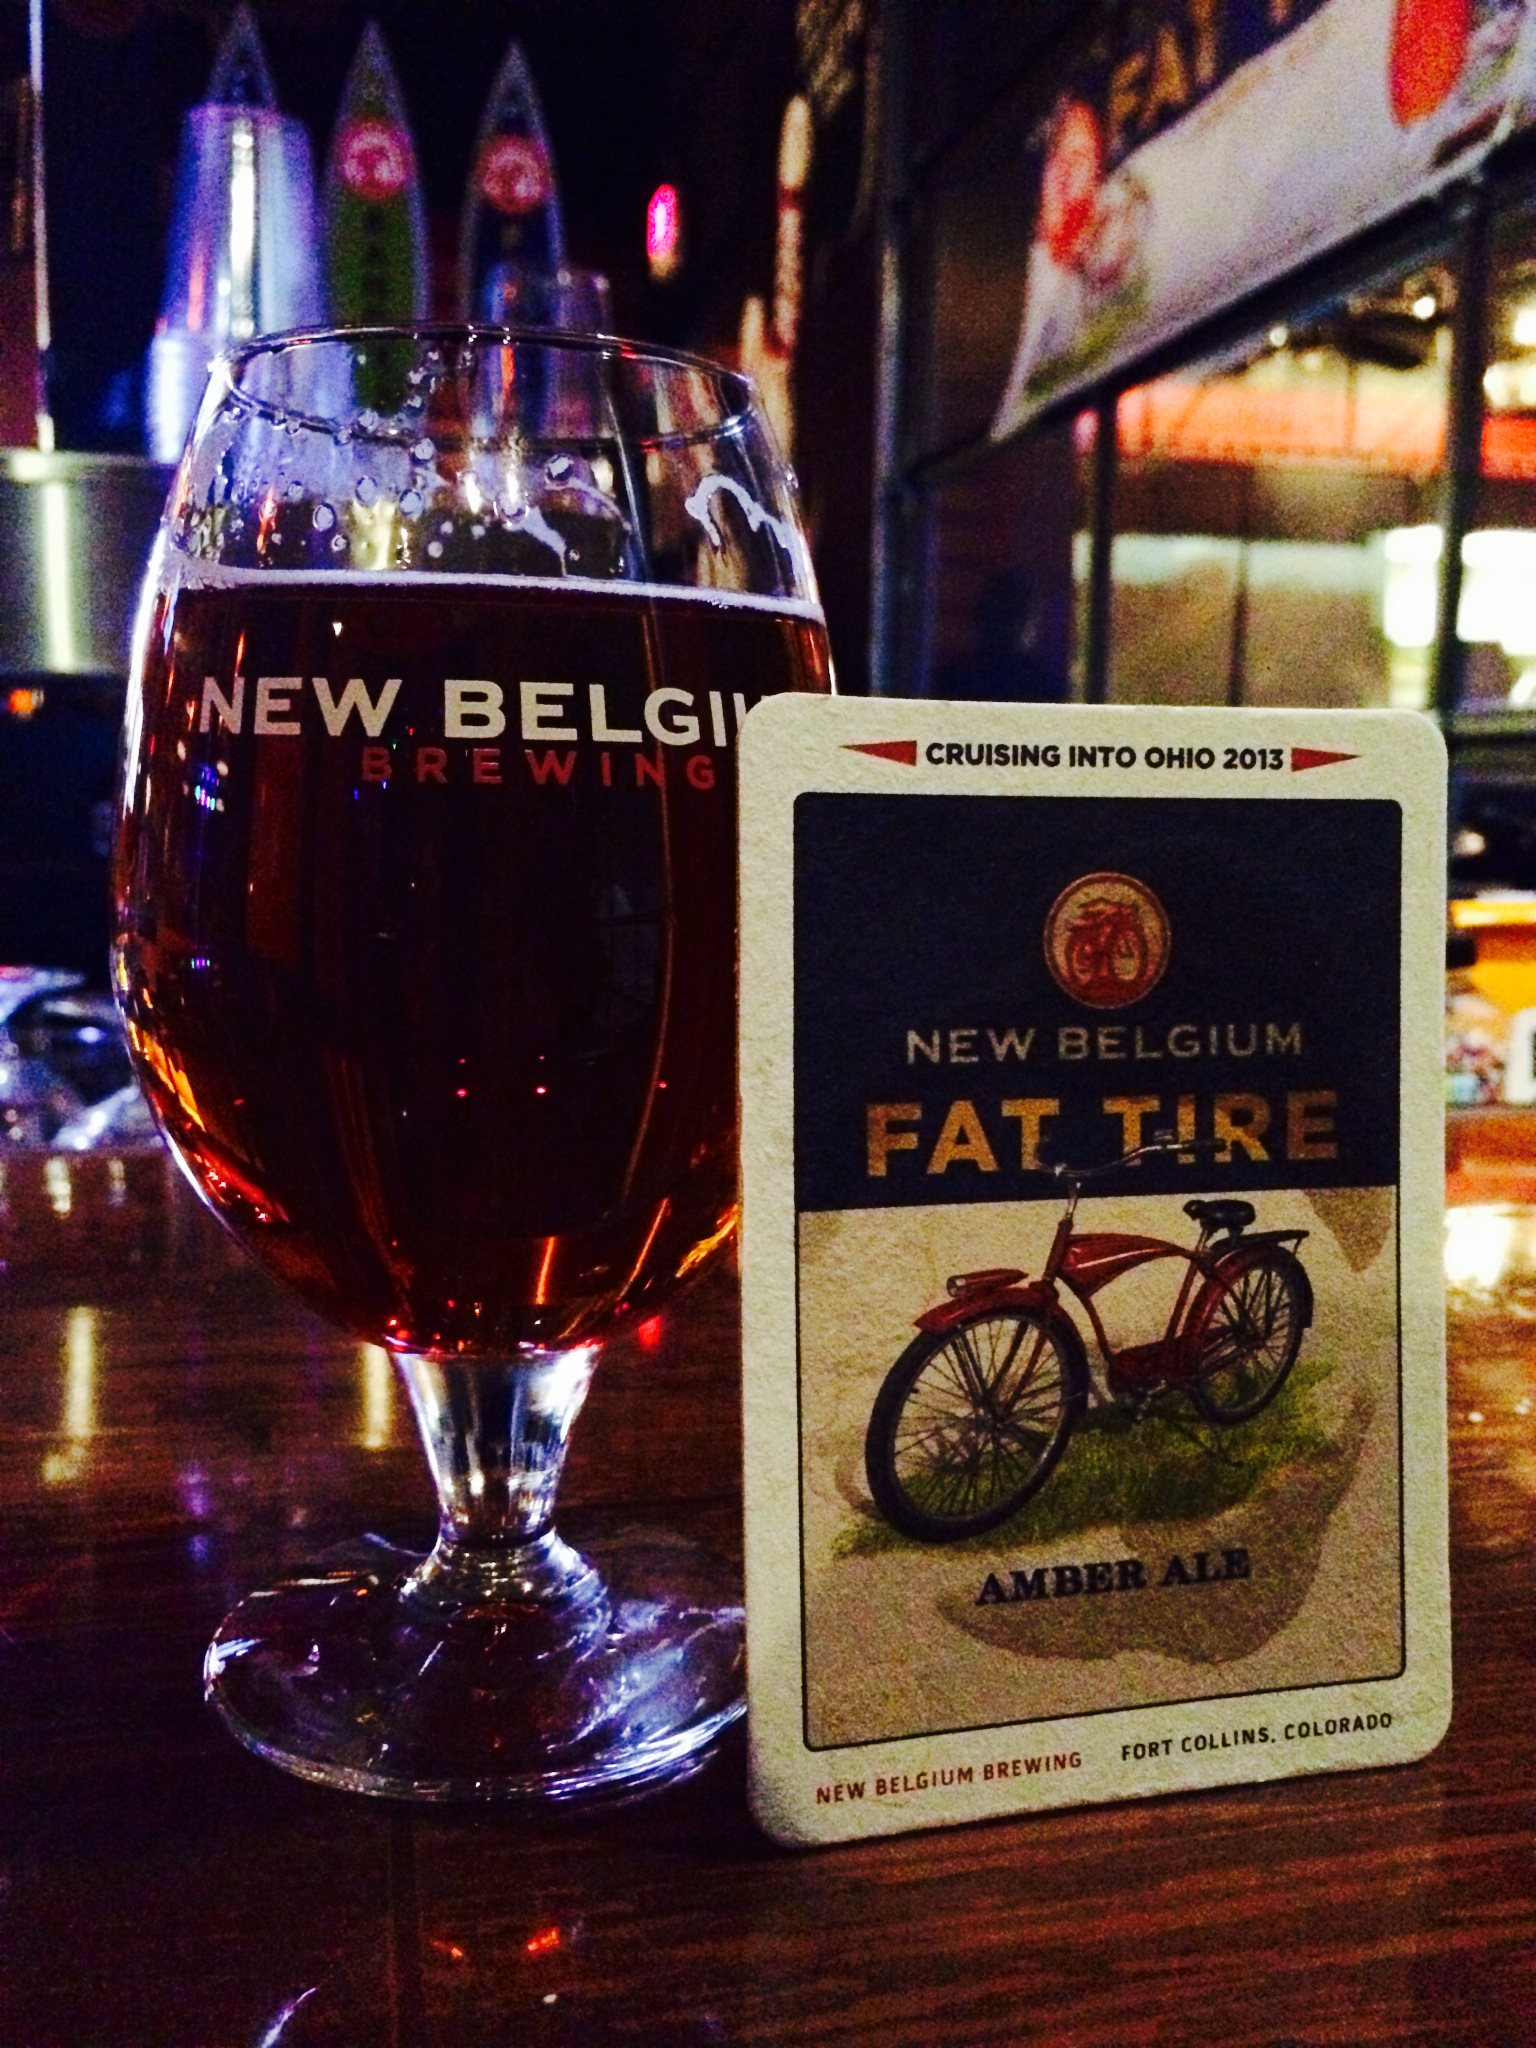 New Belgium: Fat Tire Amber Ale - The Brew Review Crew